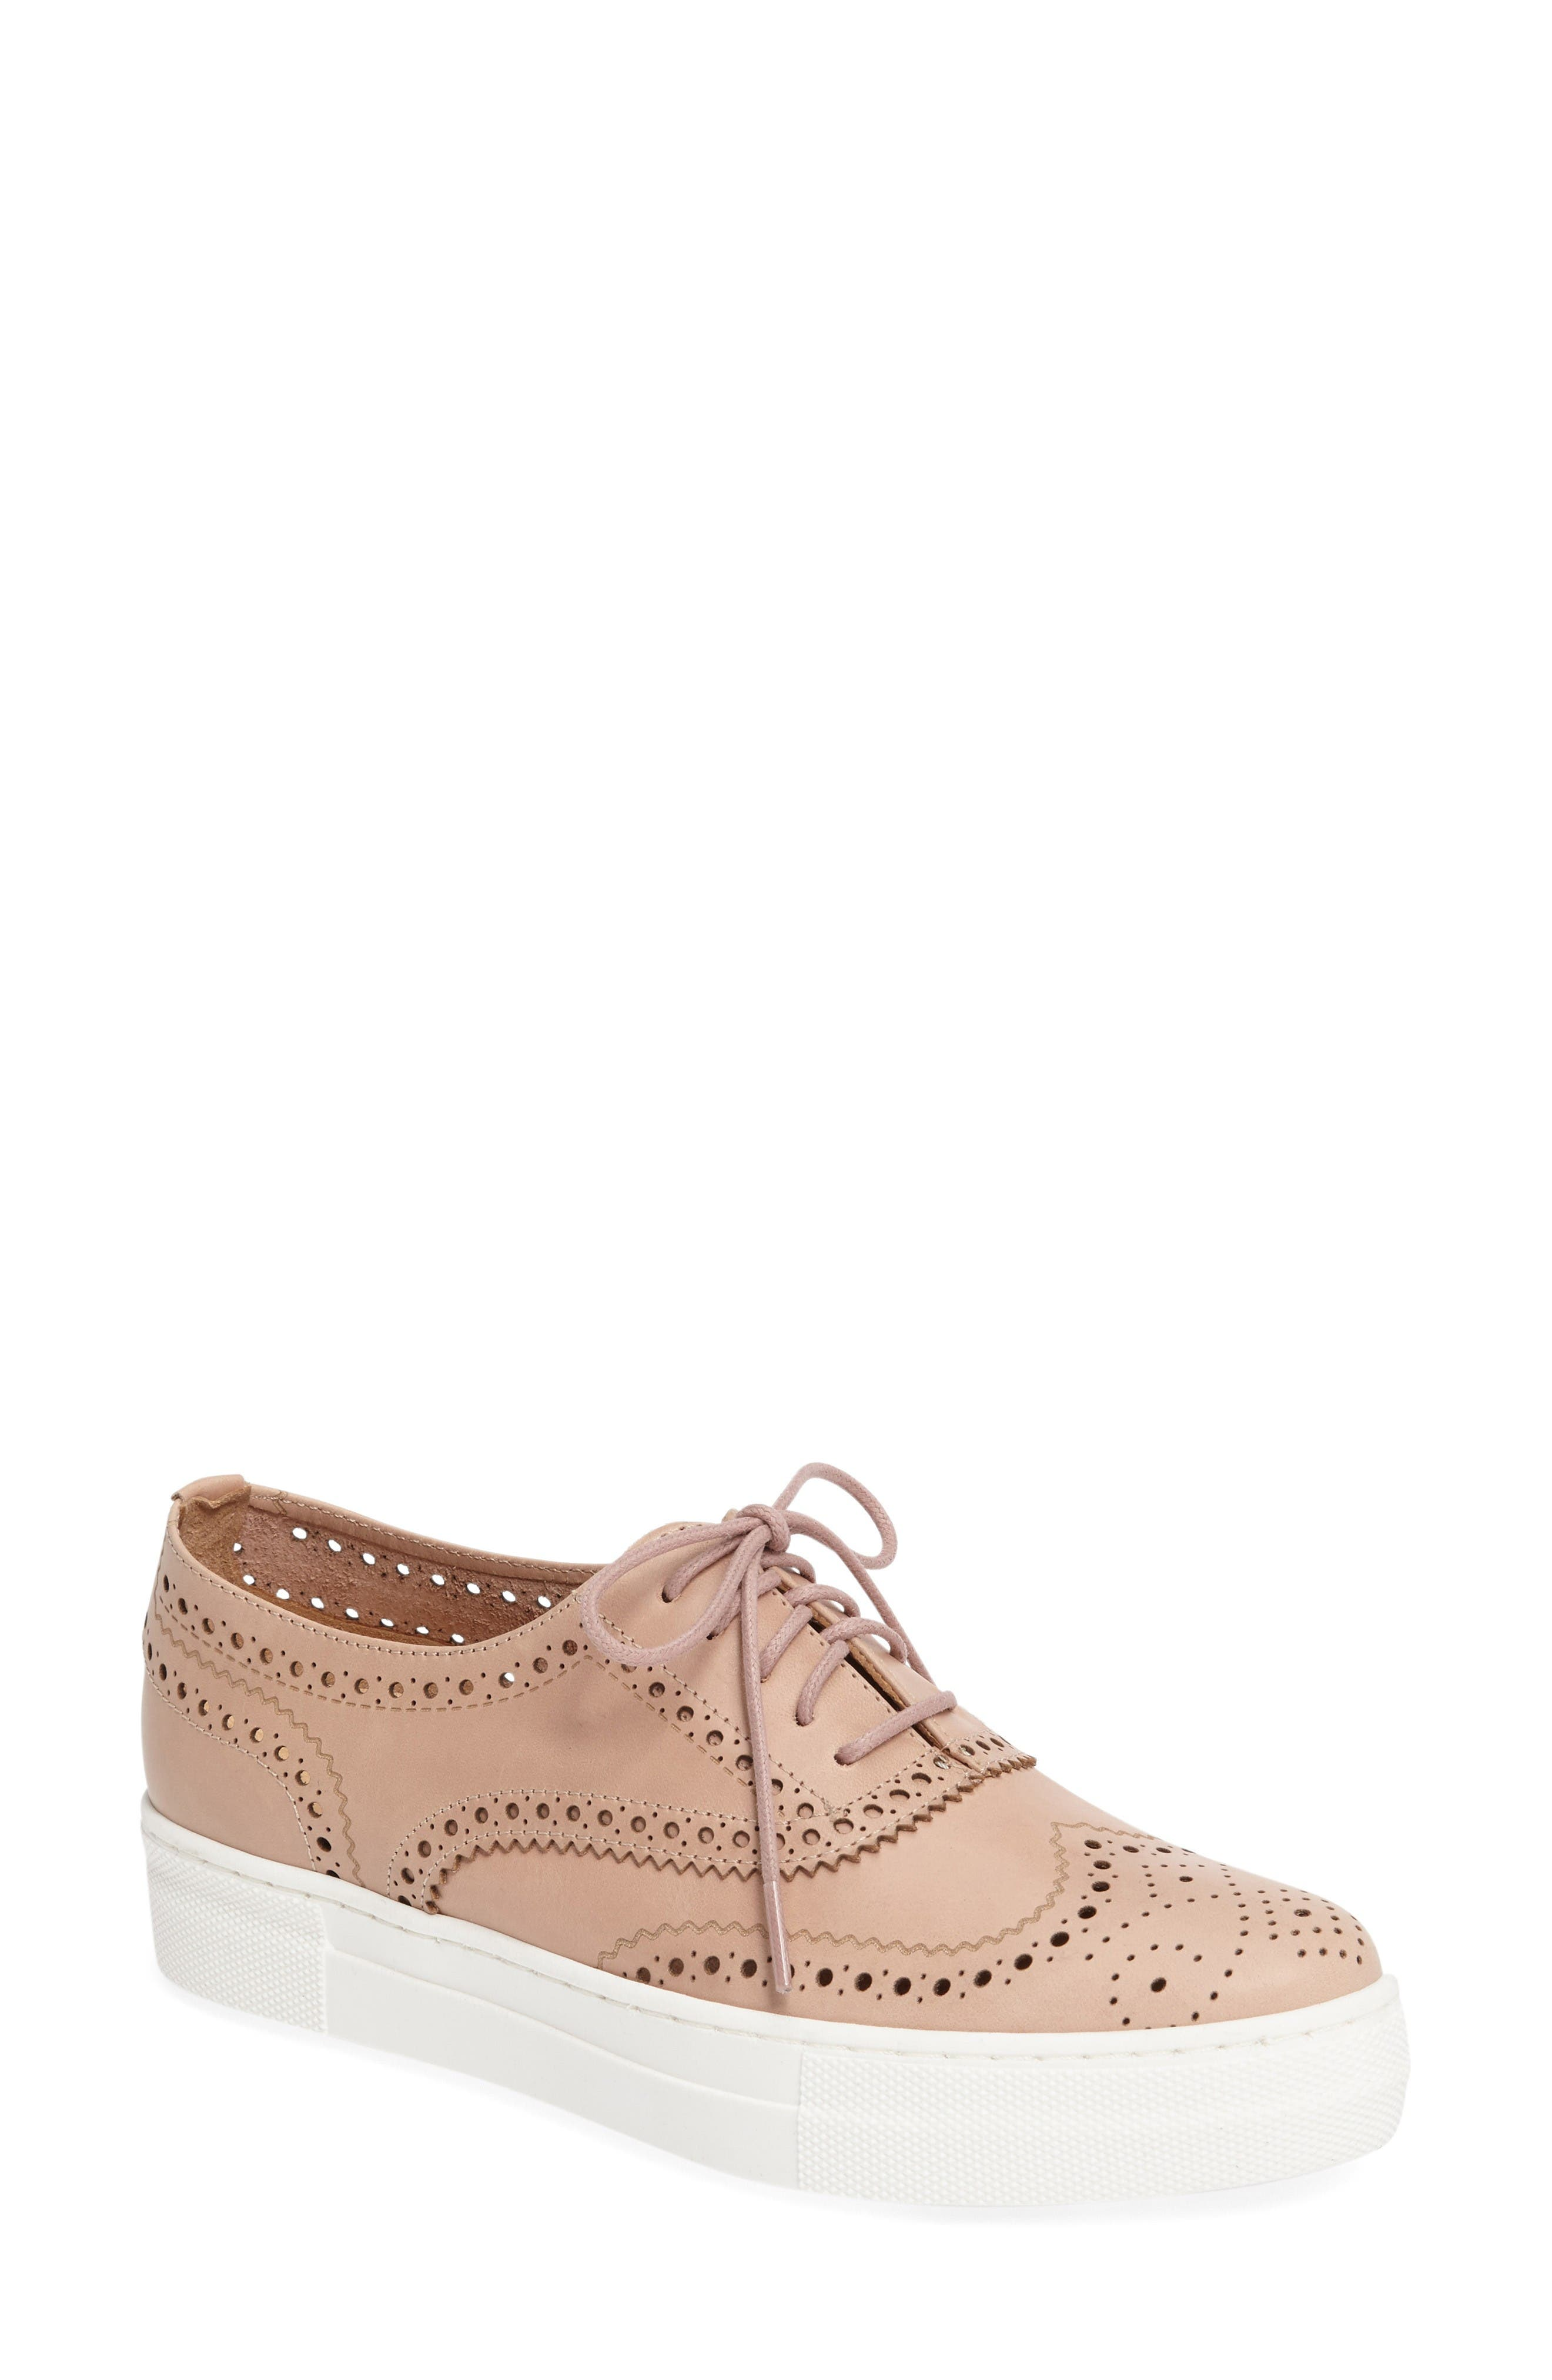 Alternate Image 1 Selected - Shellys London Kimmie Perforated Platform Sneaker (Women)